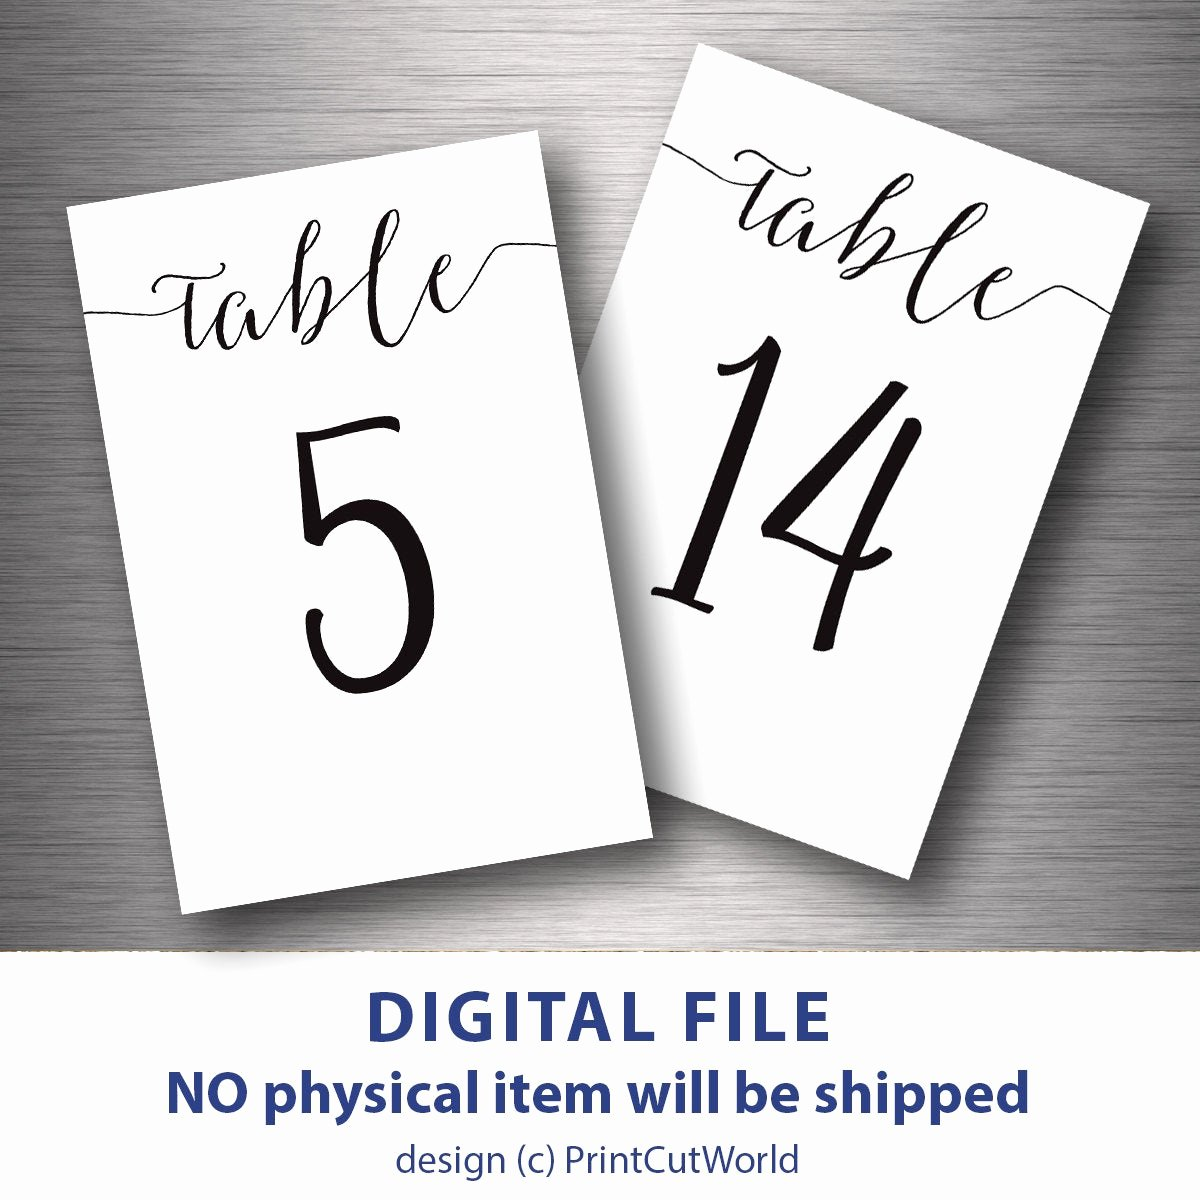 Free Table Number Templates 4x6 Beautiful Table Numbers Printable 4x6 Classic Wedding Table Number 1 30